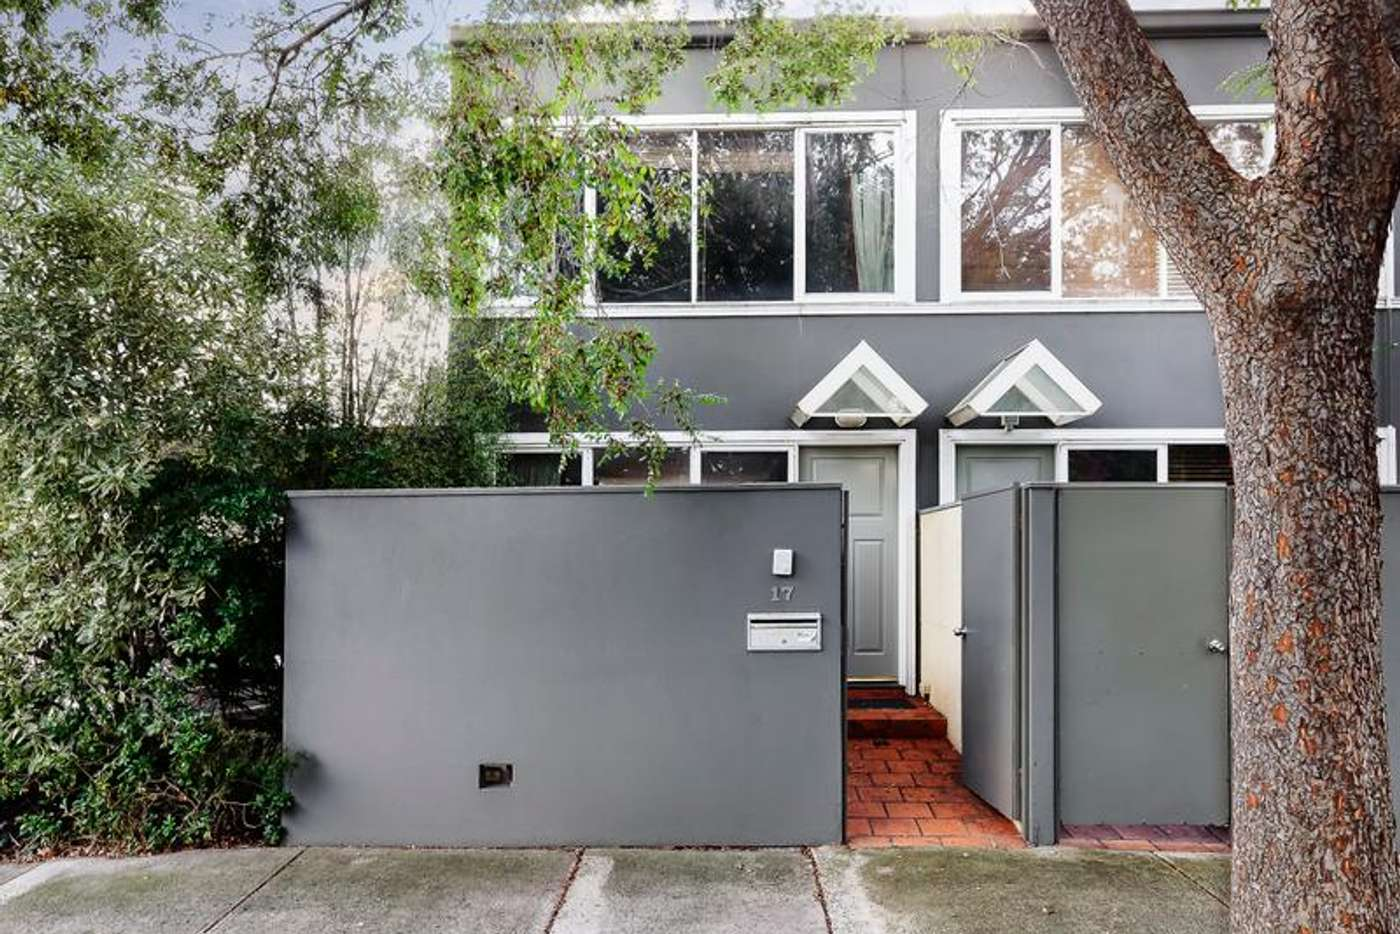 Main view of Homely house listing, 17 Vickery Street, Malvern East VIC 3145